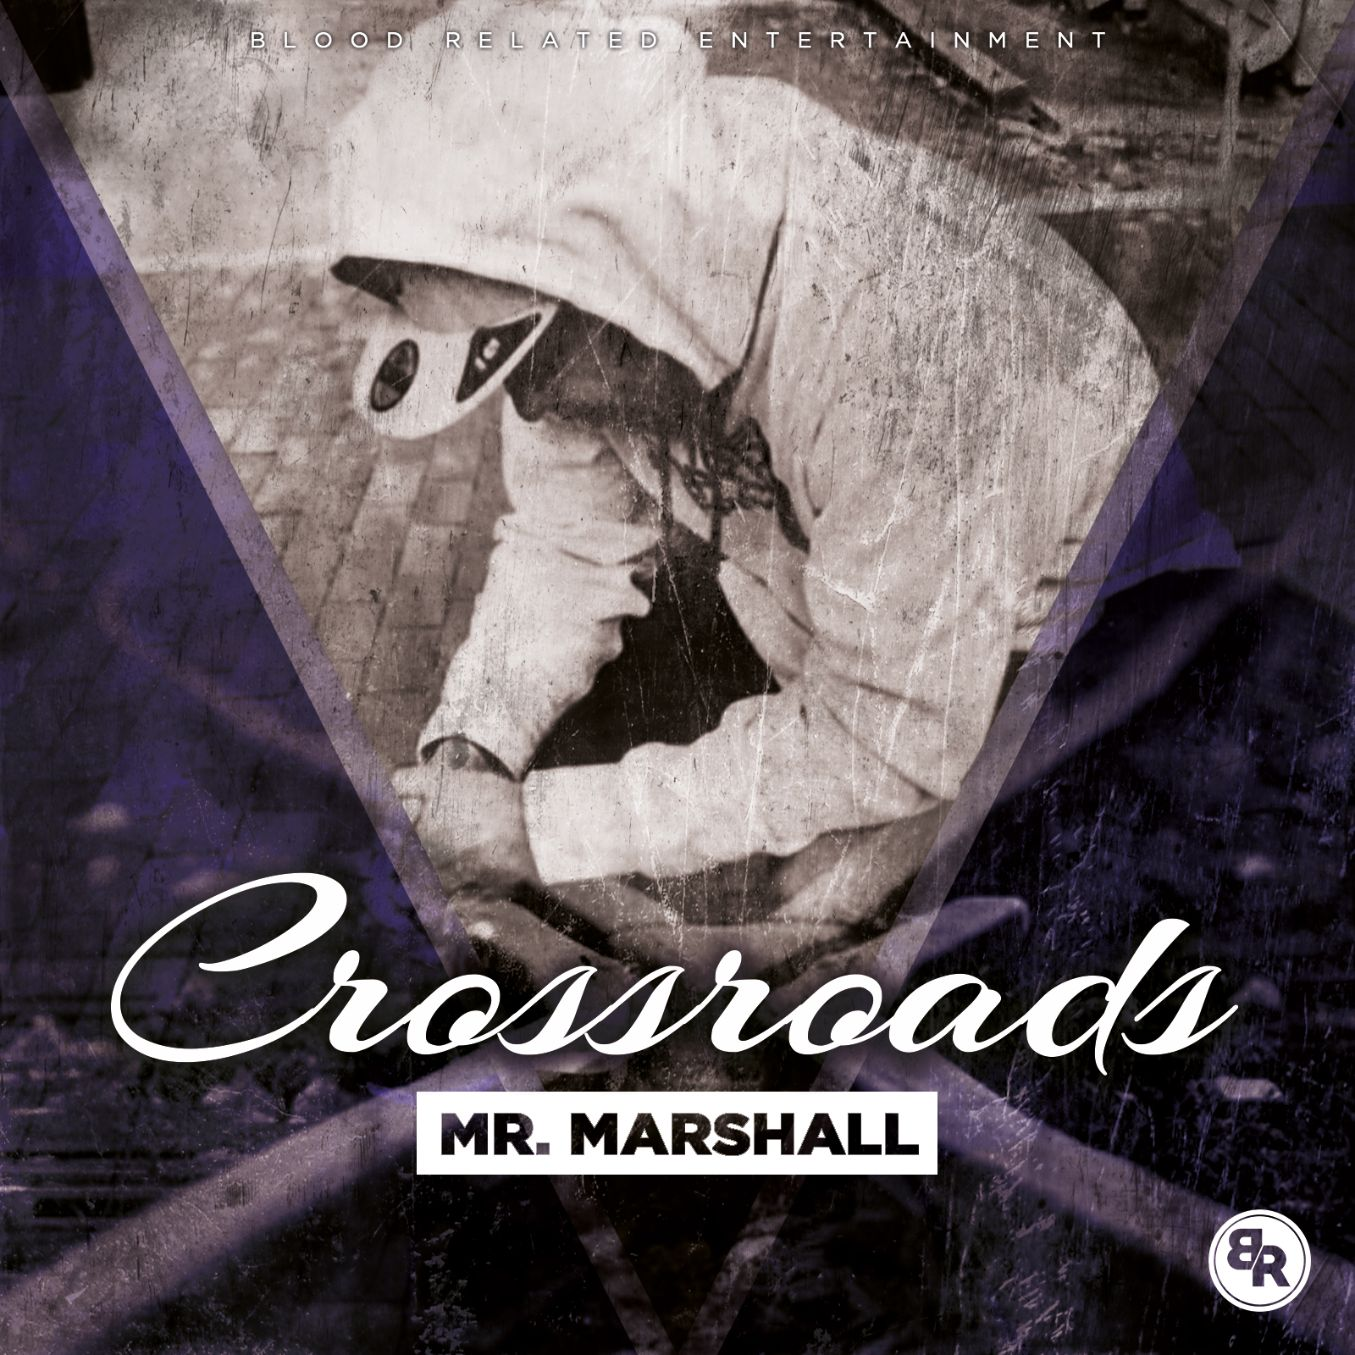 Crossroads by Christian Hip Hop Artist Mr. Marshall